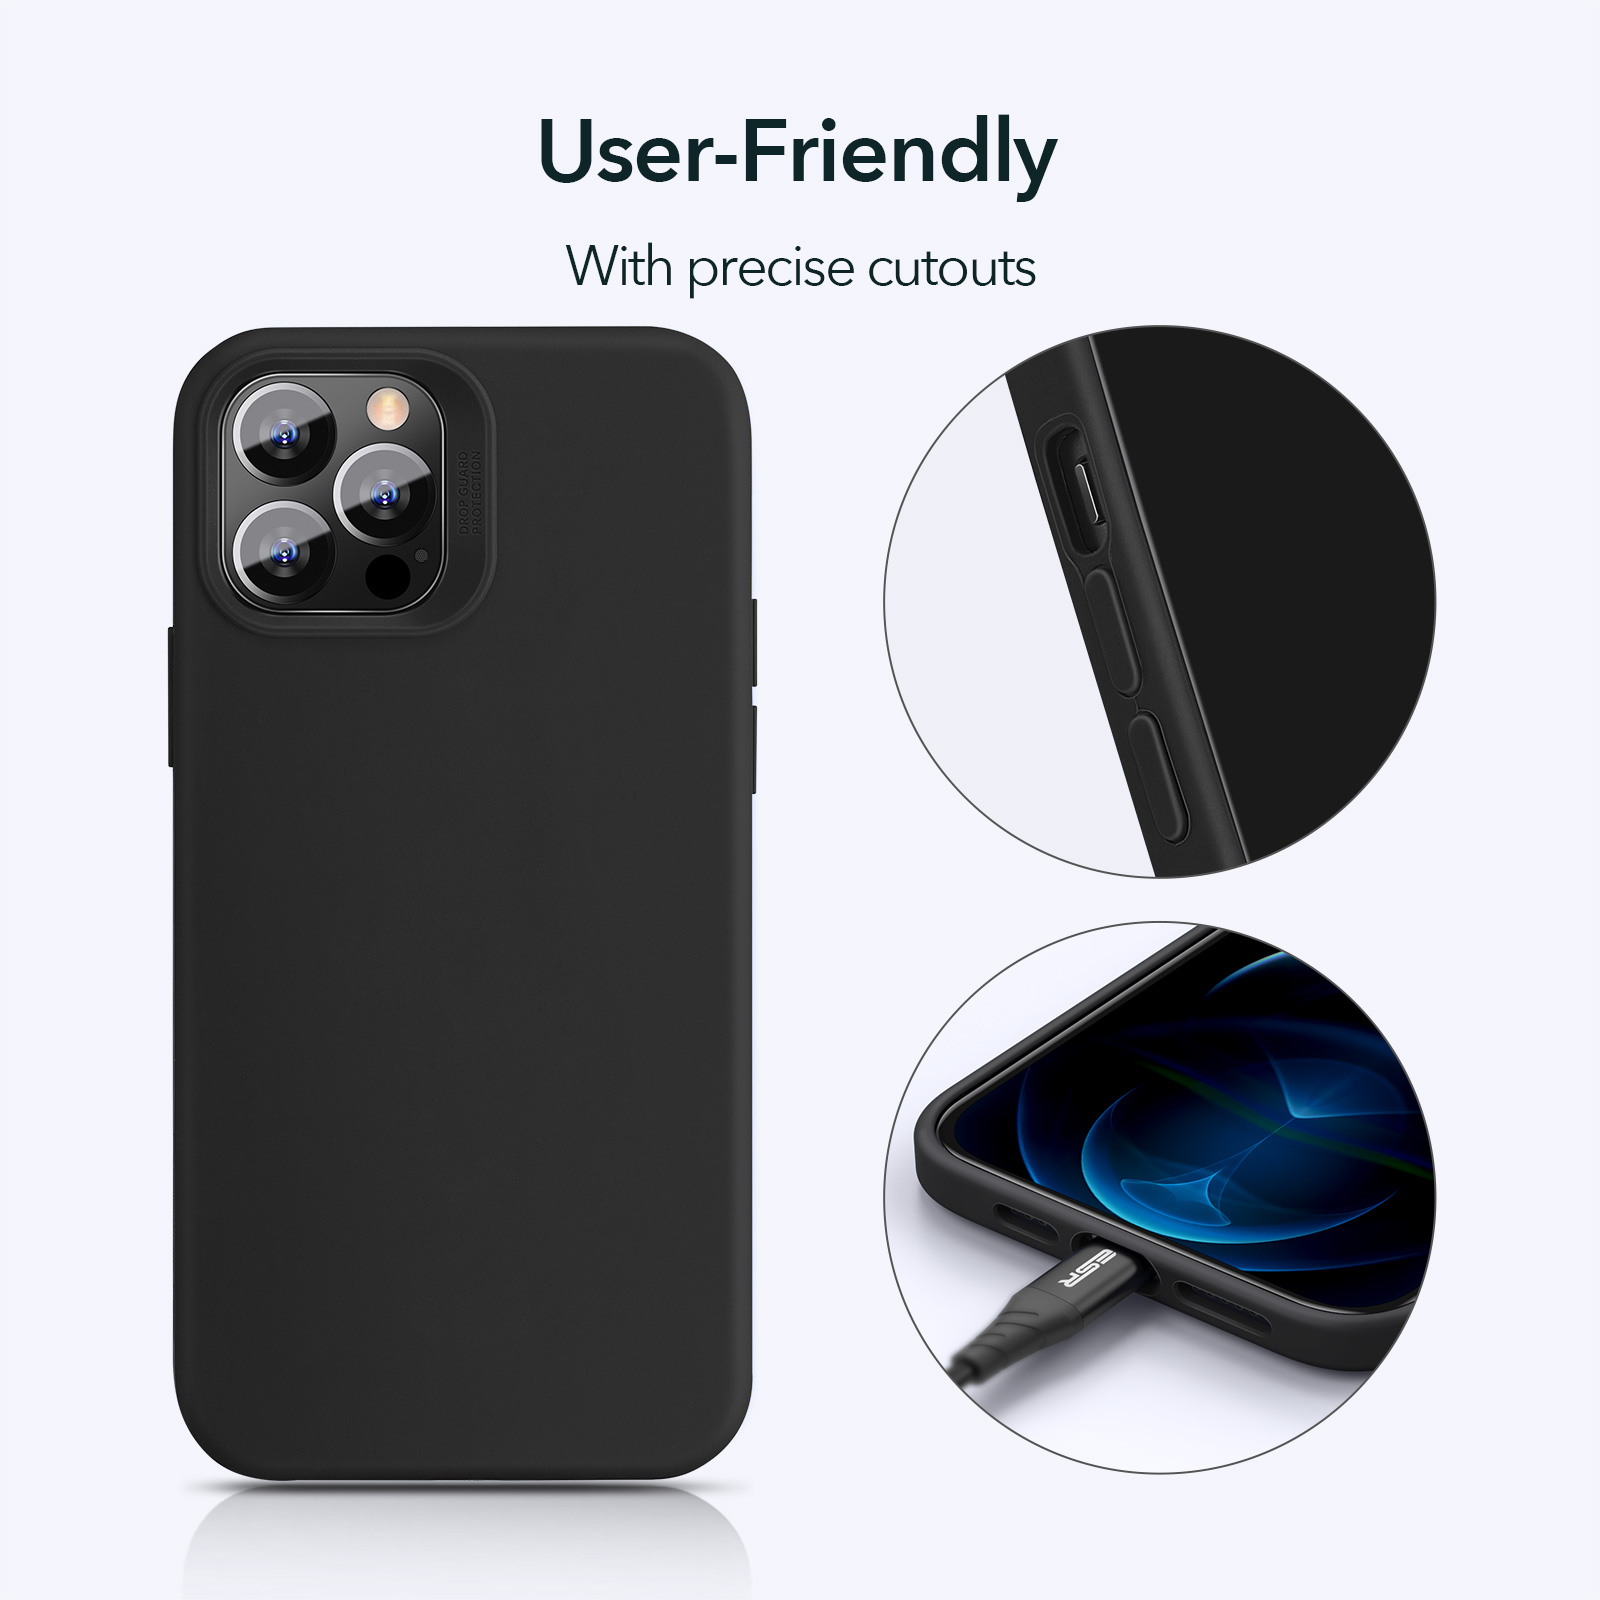 Silky smooth Silicone user-friendly case for iPhone 12 Black